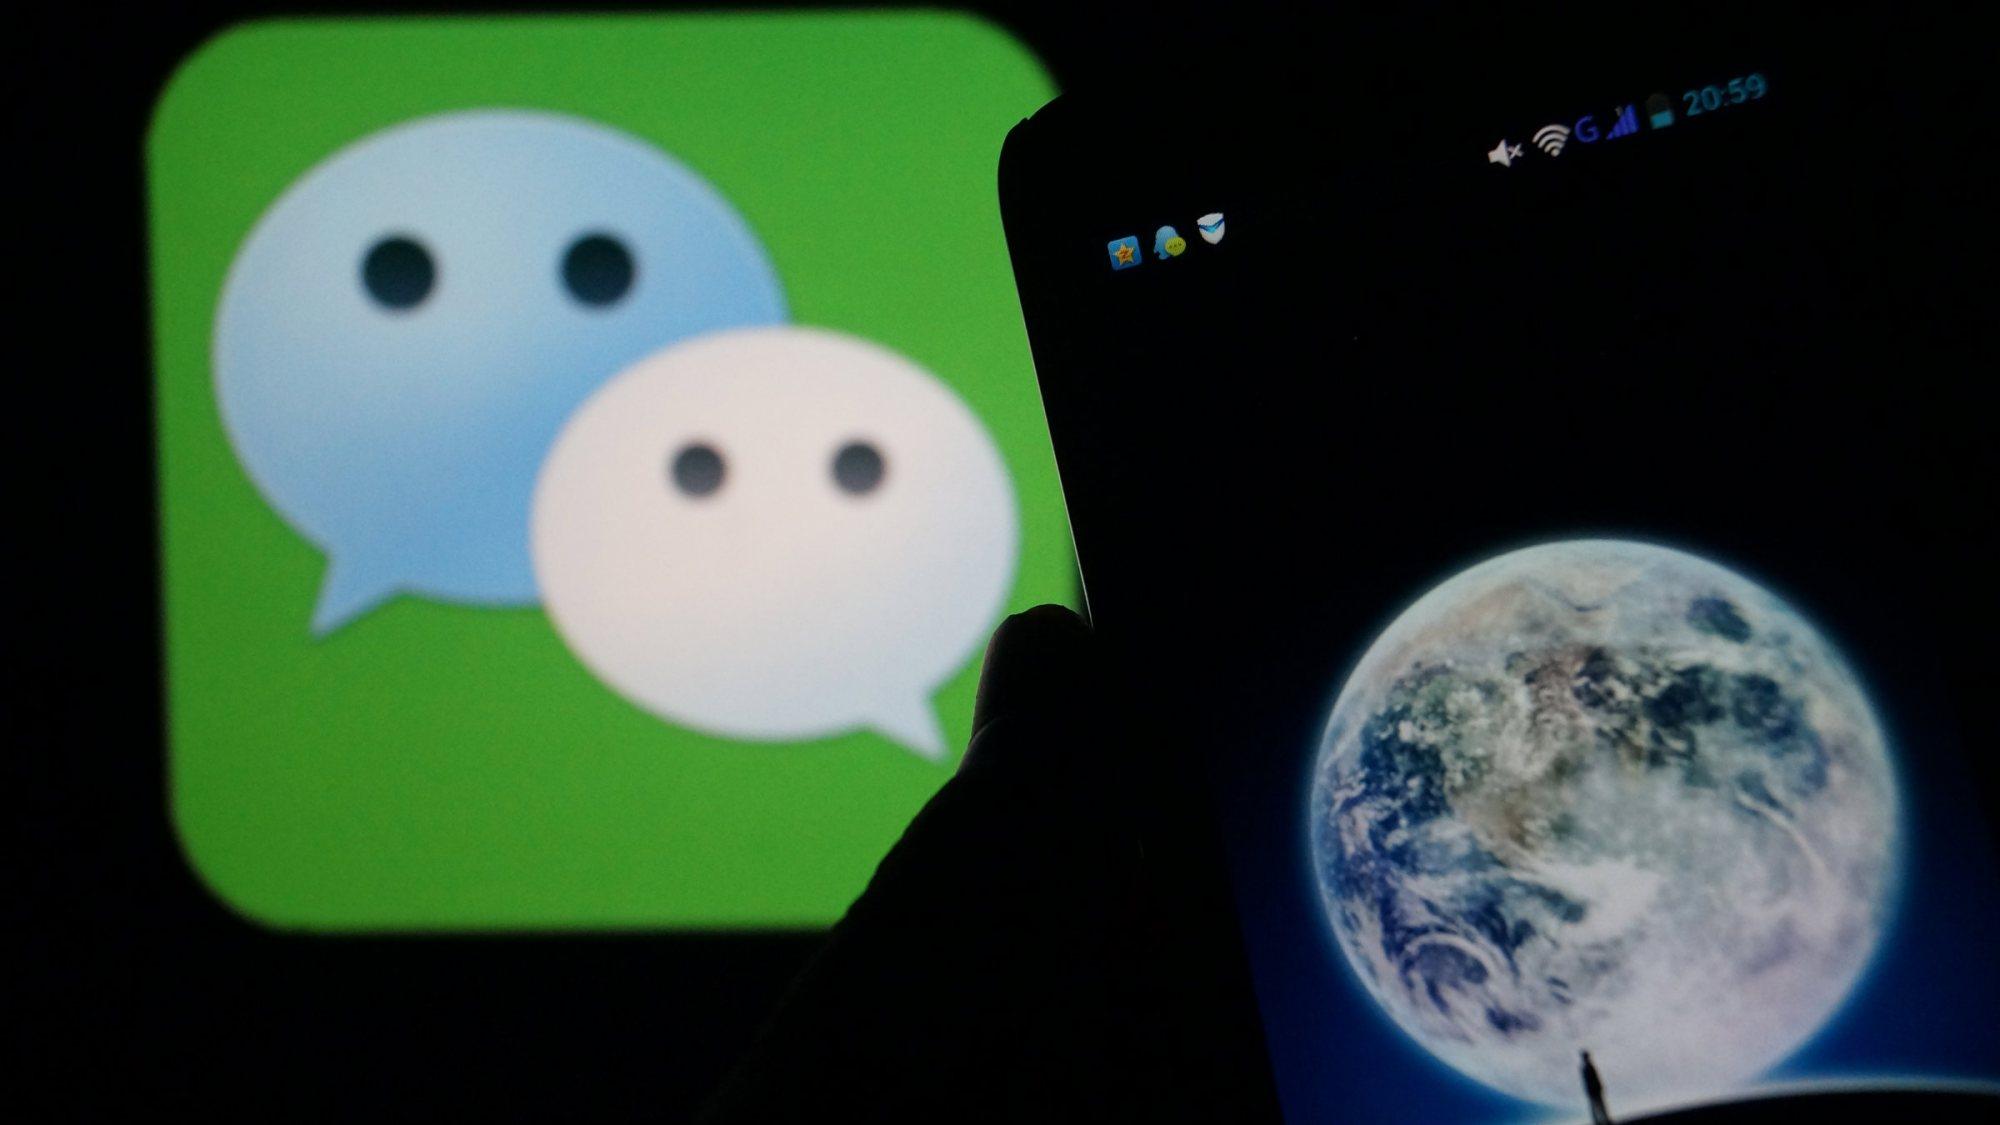 Wechat facts and figures you need to know nextstep hub wechat facts and figures you need to know by nextstep reheart Choice Image